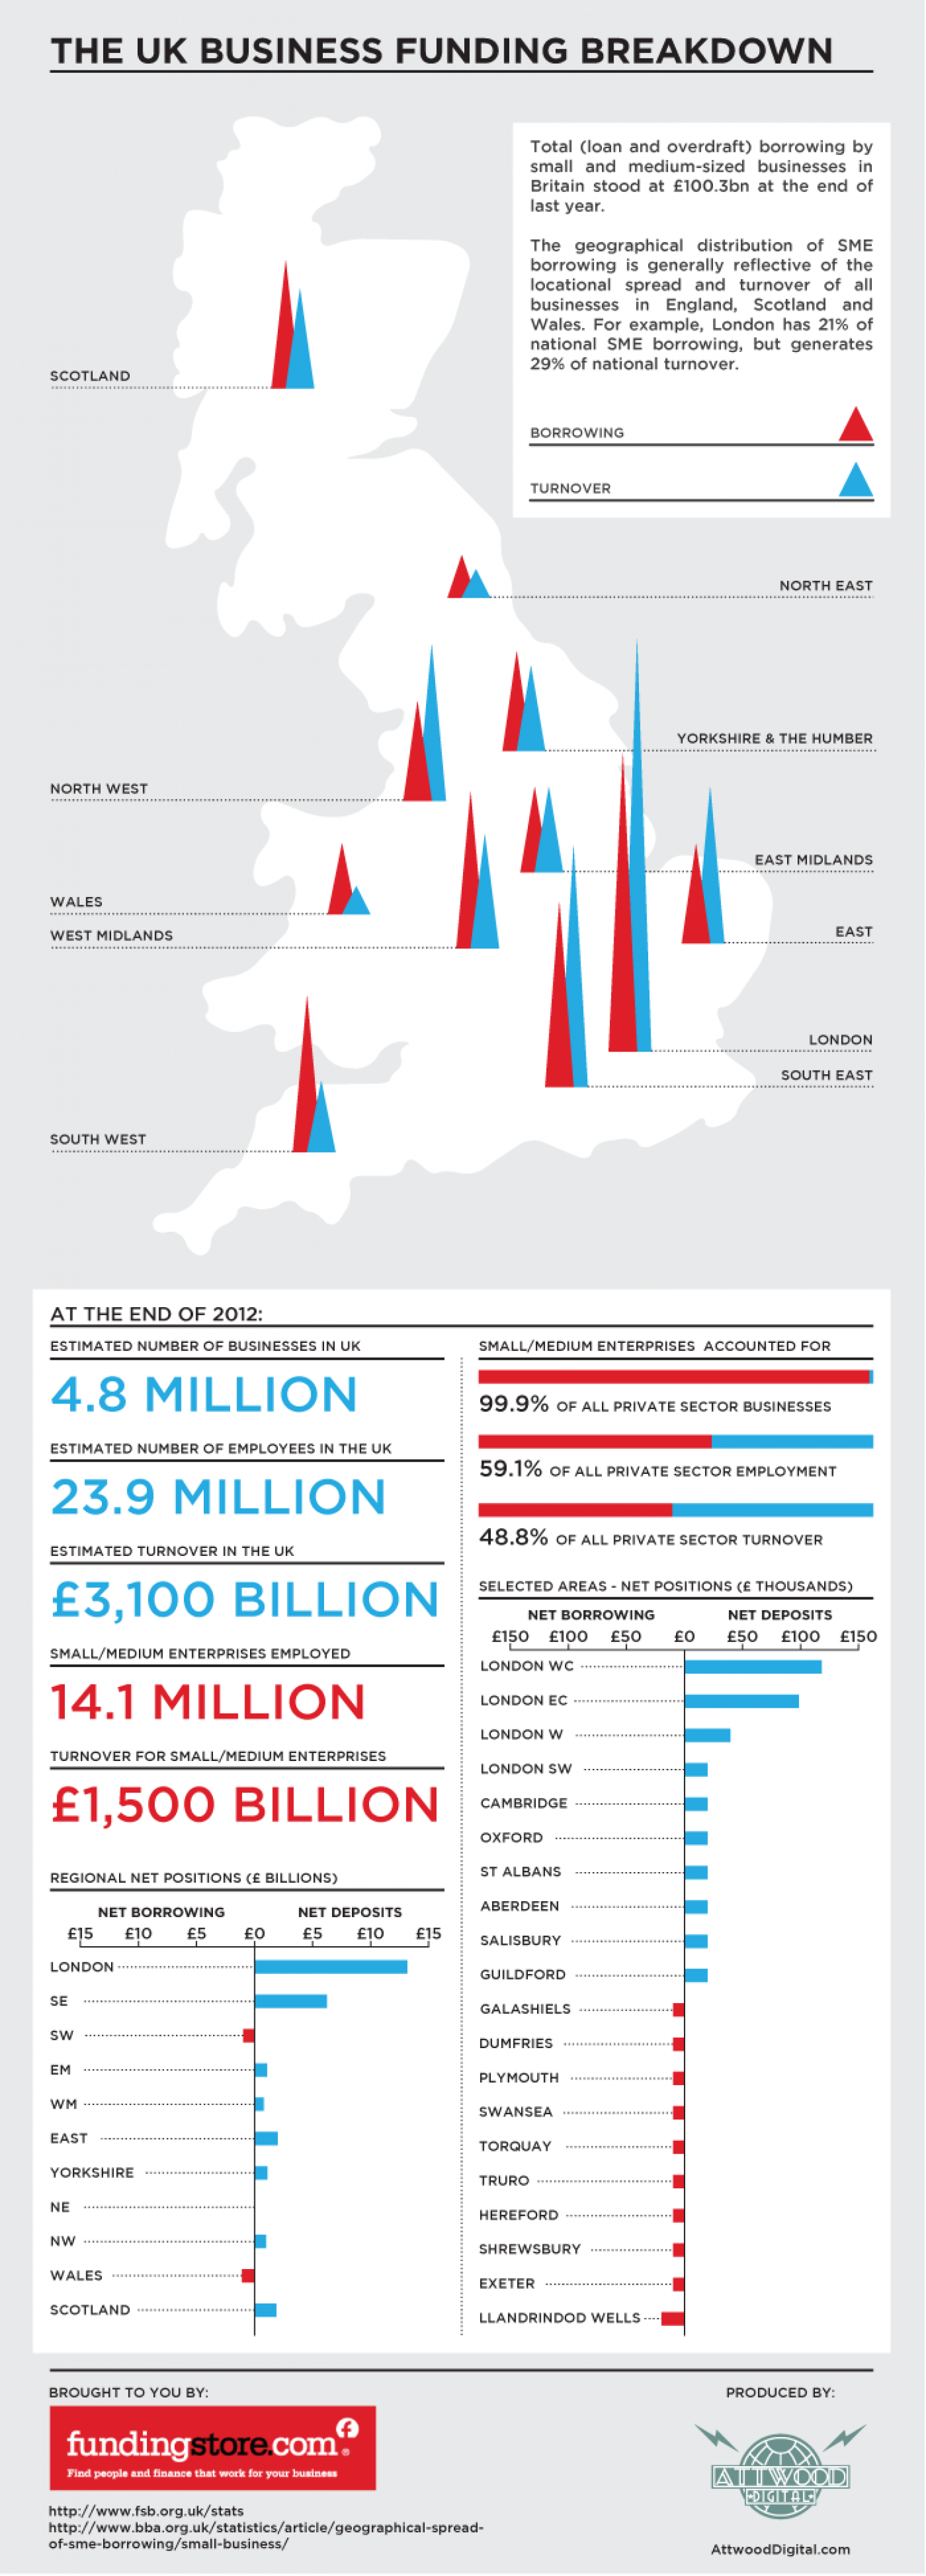 The UK Business Funding Breakdown Infographic